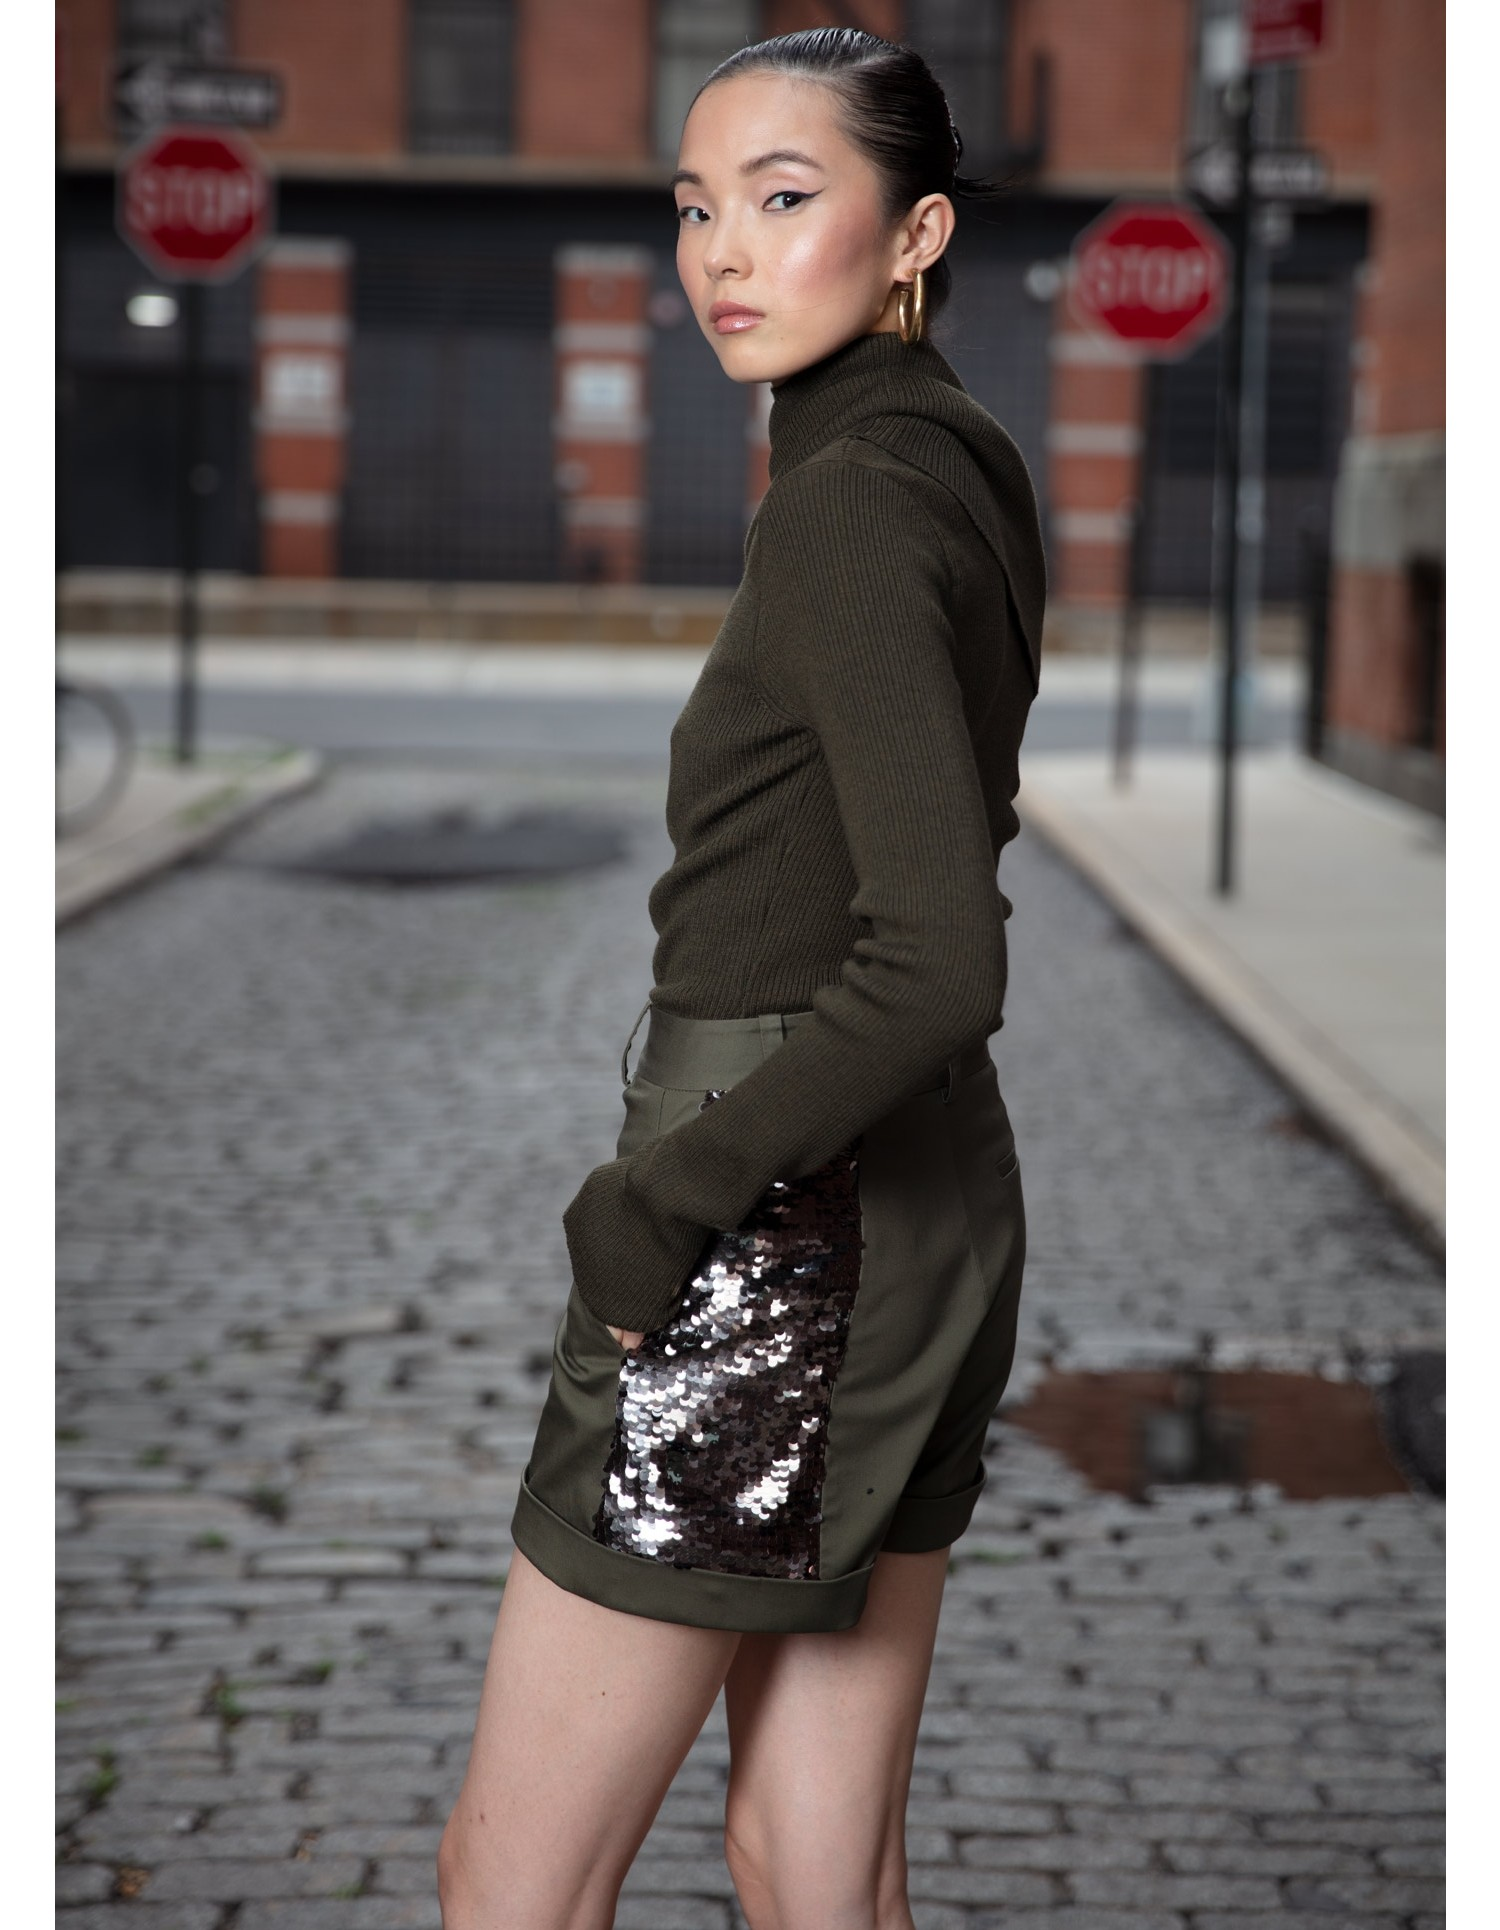 MONSE Sequined Trouser Short in Olive and Taupe on Model Side View